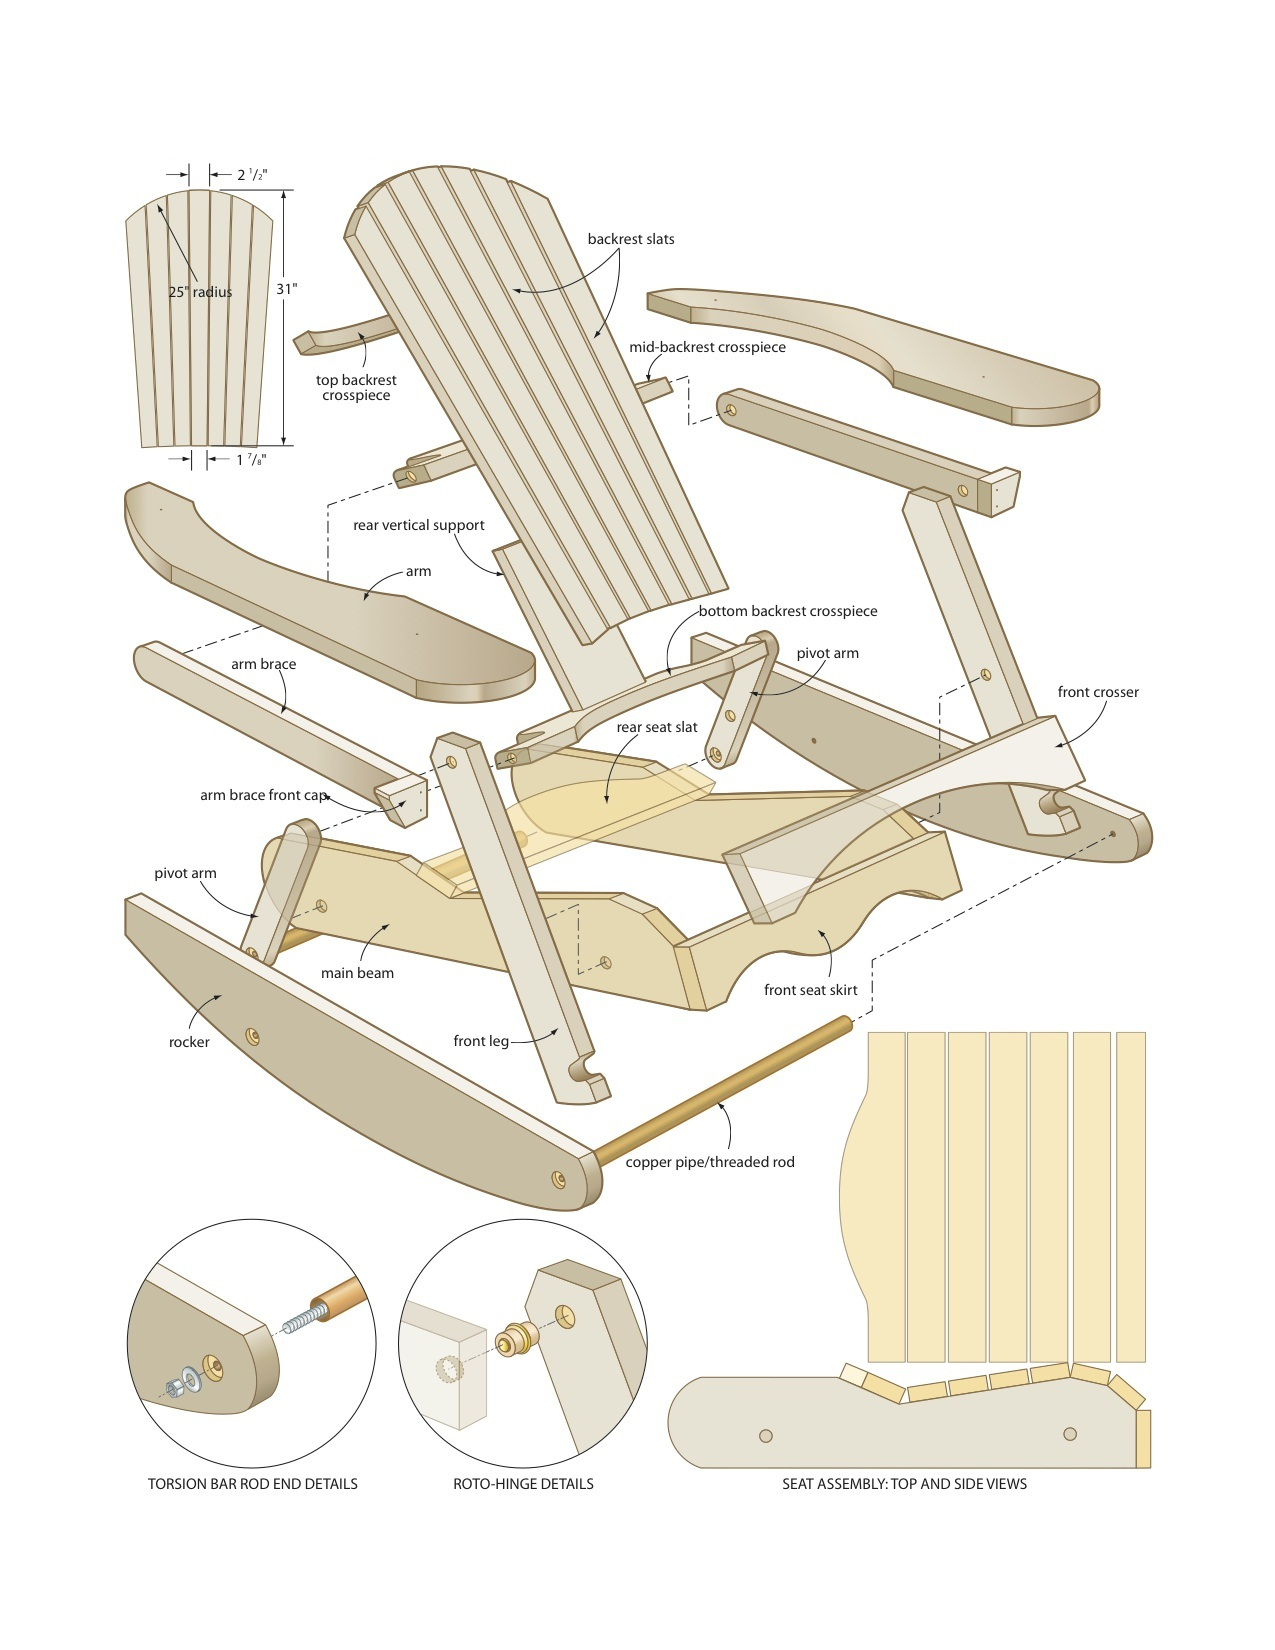 Plans For Wood Rocker Plans DIY Free Download plans making a toy